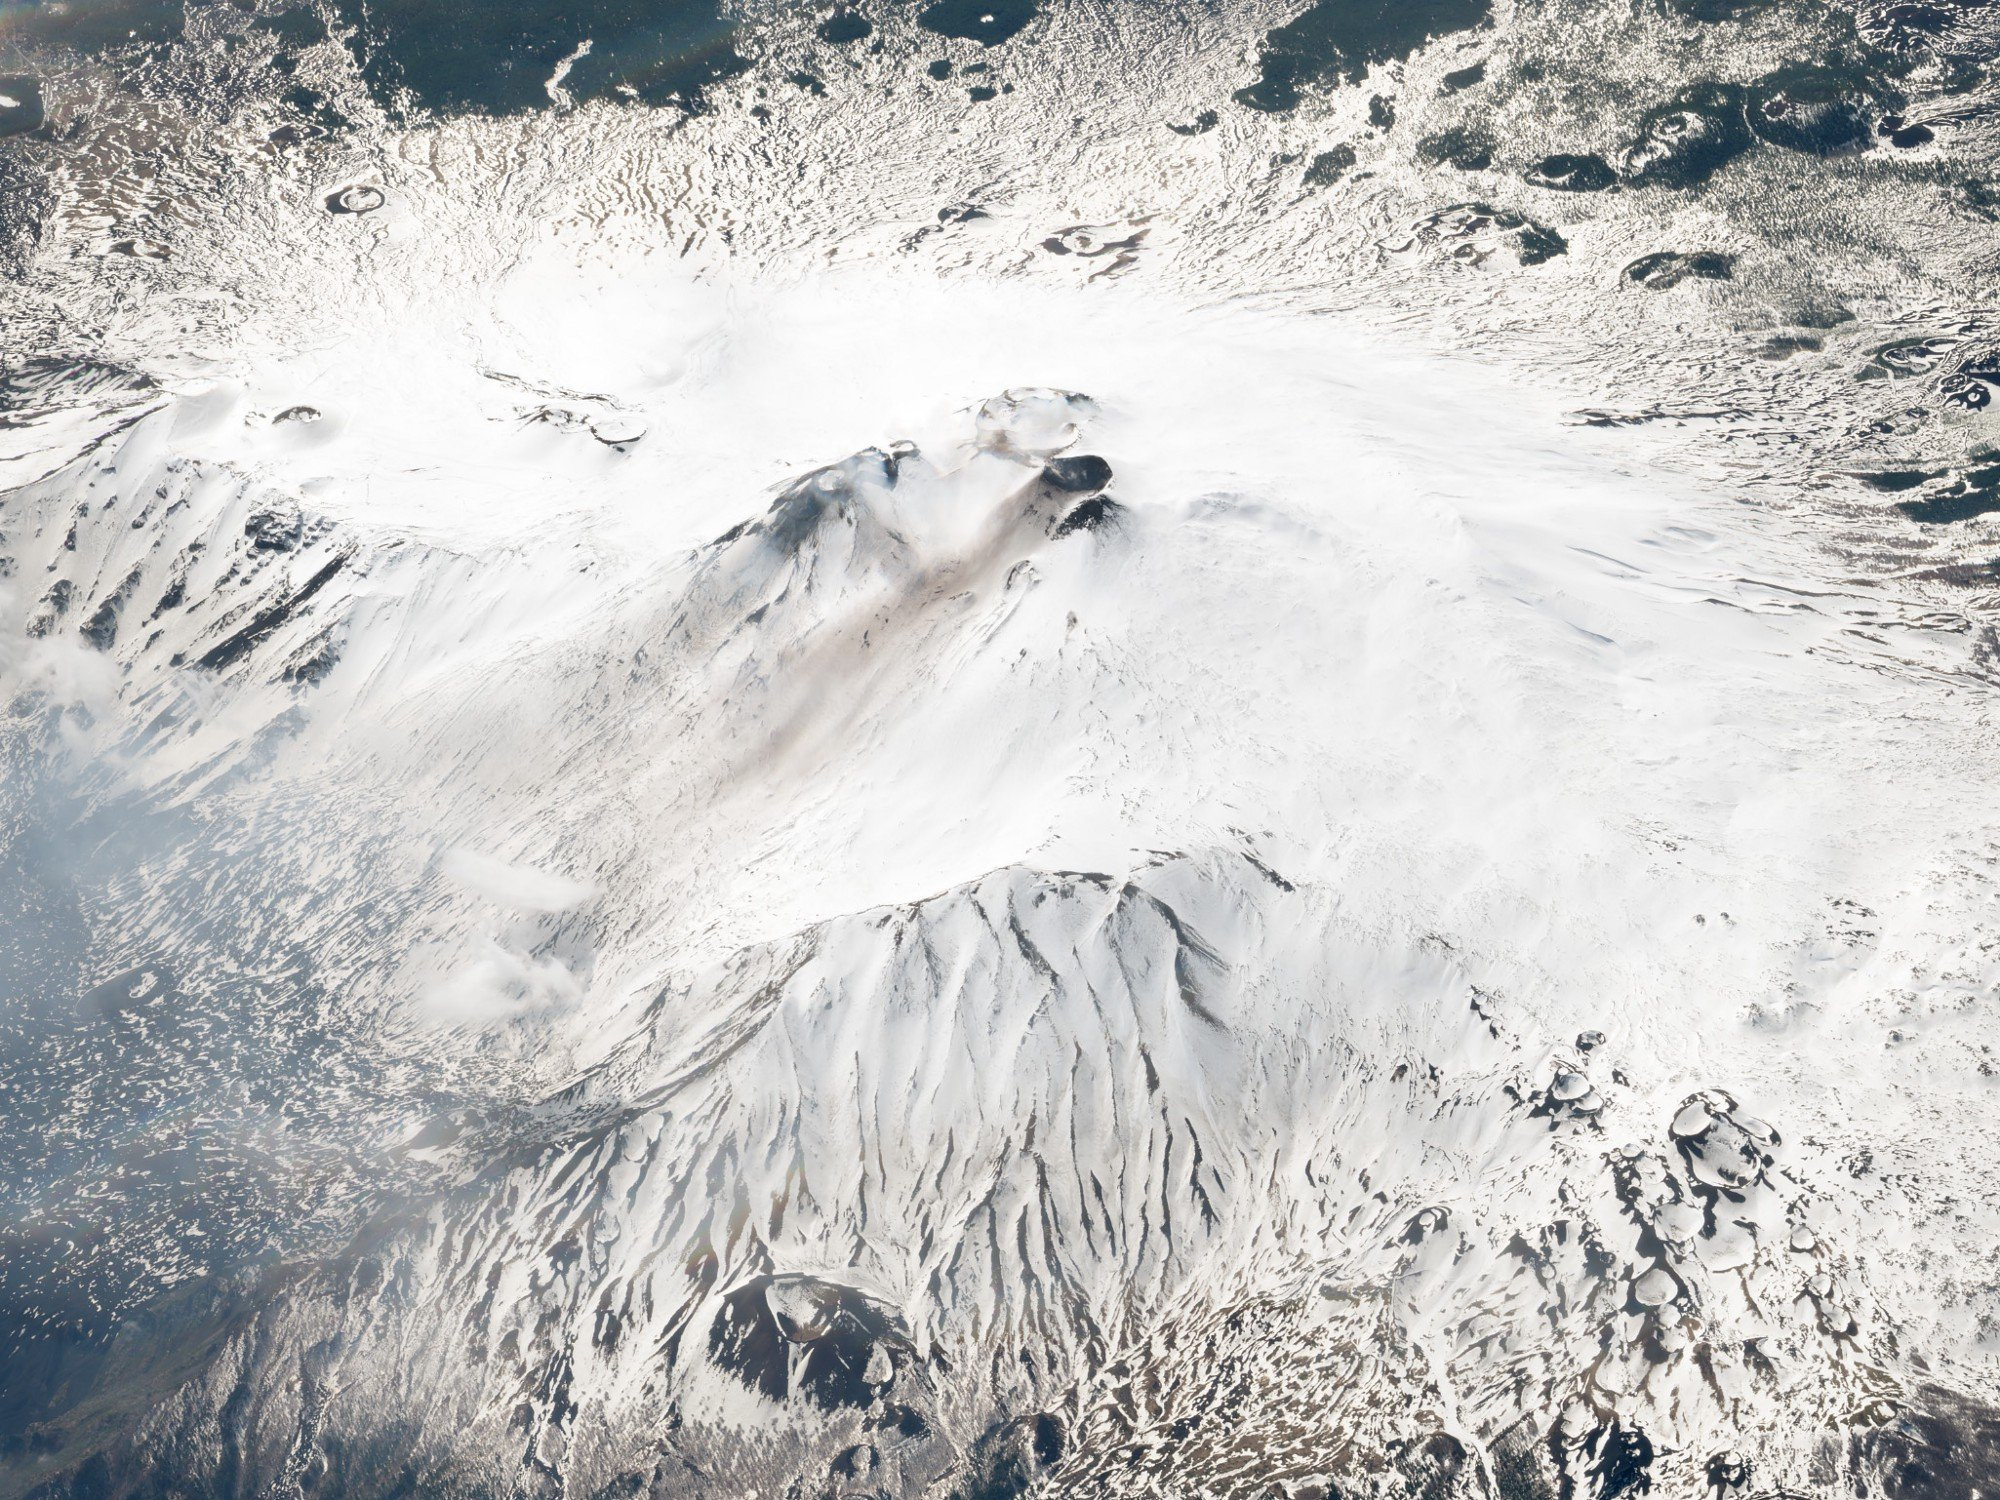 Mount Etna, Italy. March 10, 2018. Image ©2018 Planet Labs, Inc. cc-by-sa4.0.